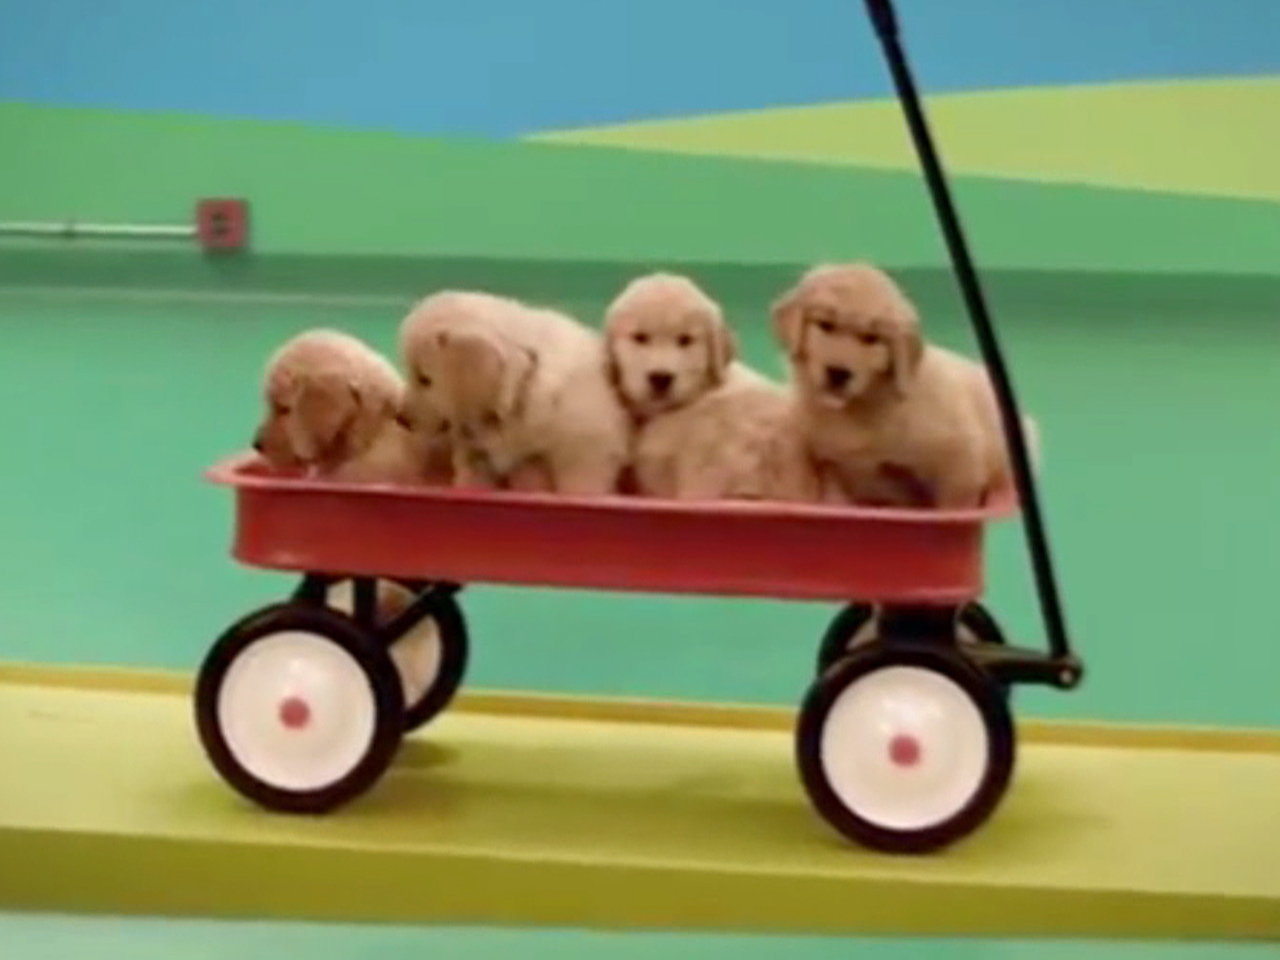 New ad features puppy-operated Rube Goldberg machine